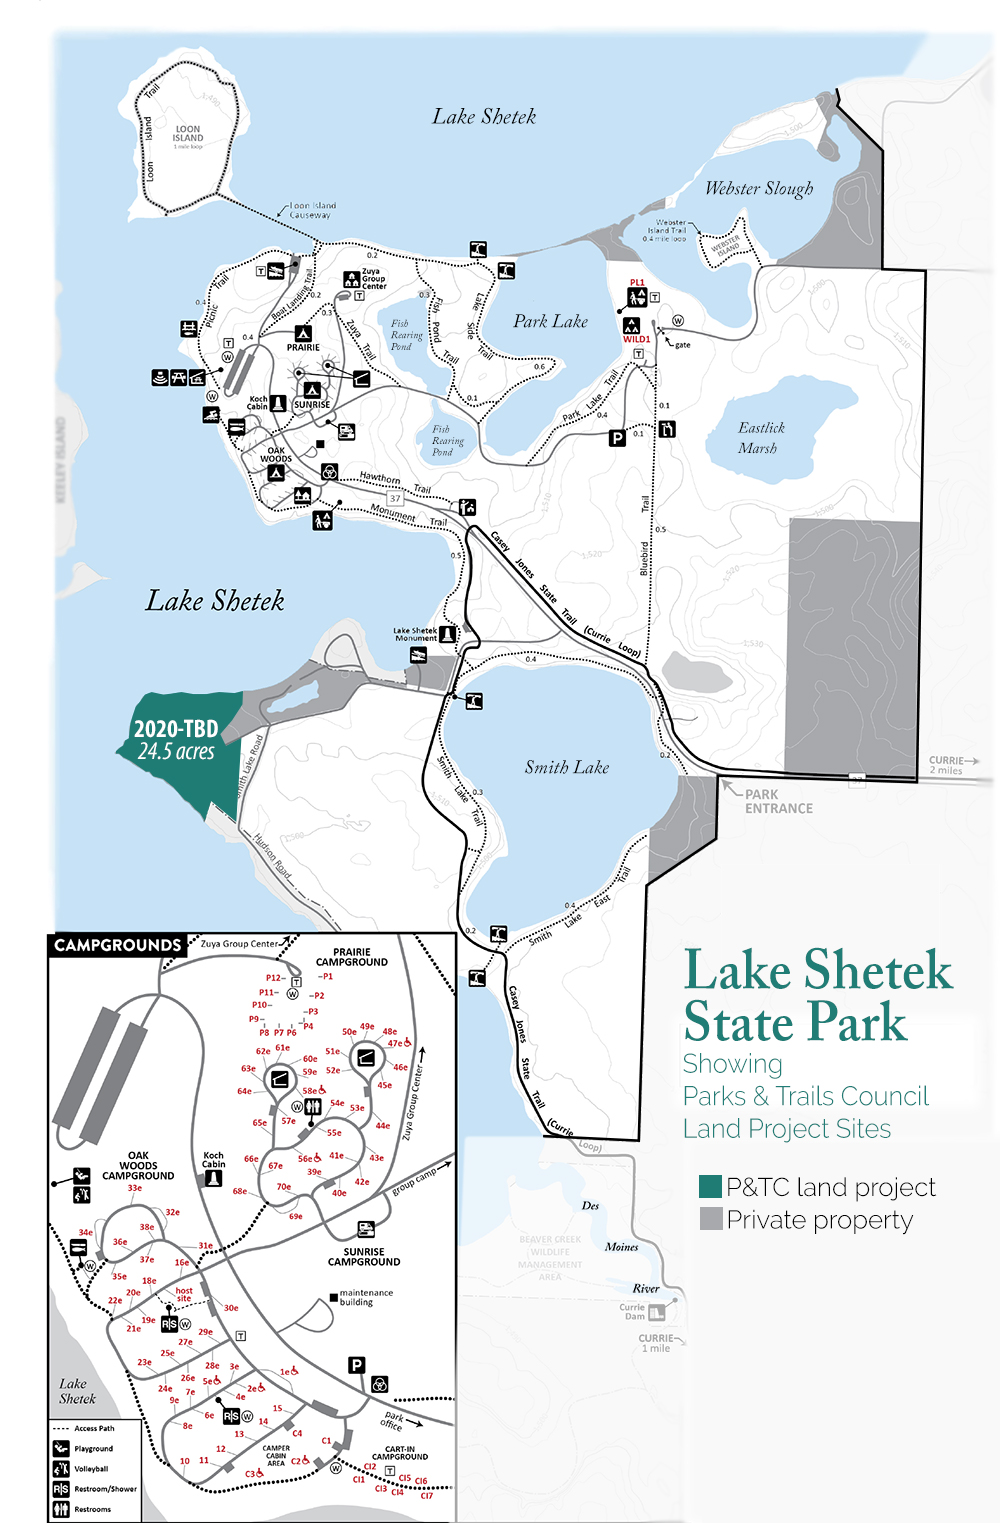 Map of Lake Shetek